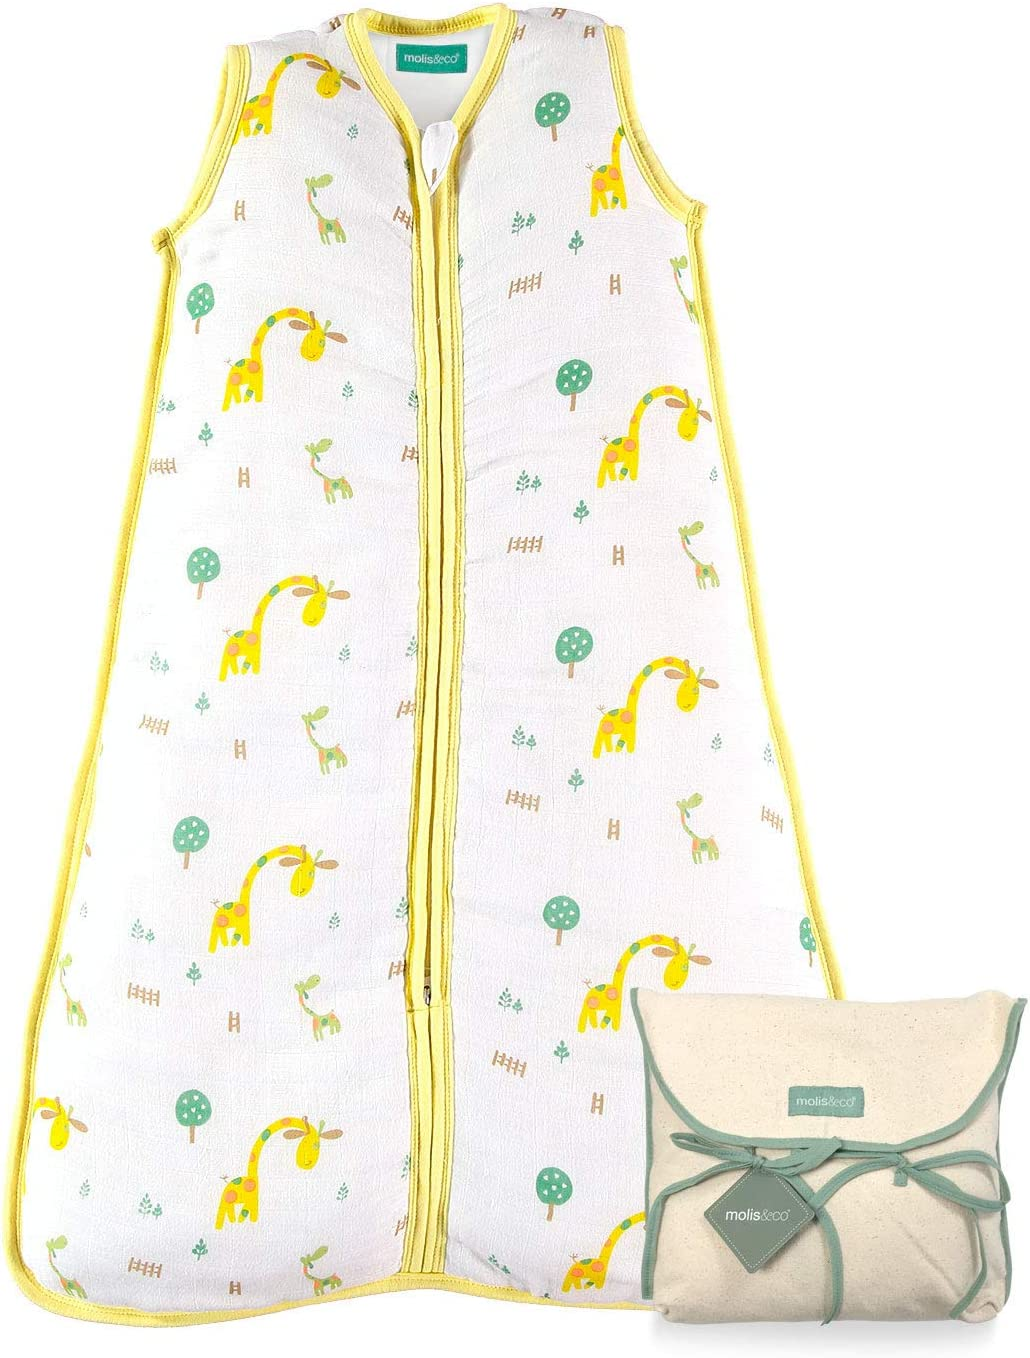 Babies Grow Bag. Super Soft and Warm 2.5 TOG Winter Baby Sleeping Bag Unisex Grey Leaf Print 0 to 6 Months Ideal for Winter and mid-Season use molis/&co